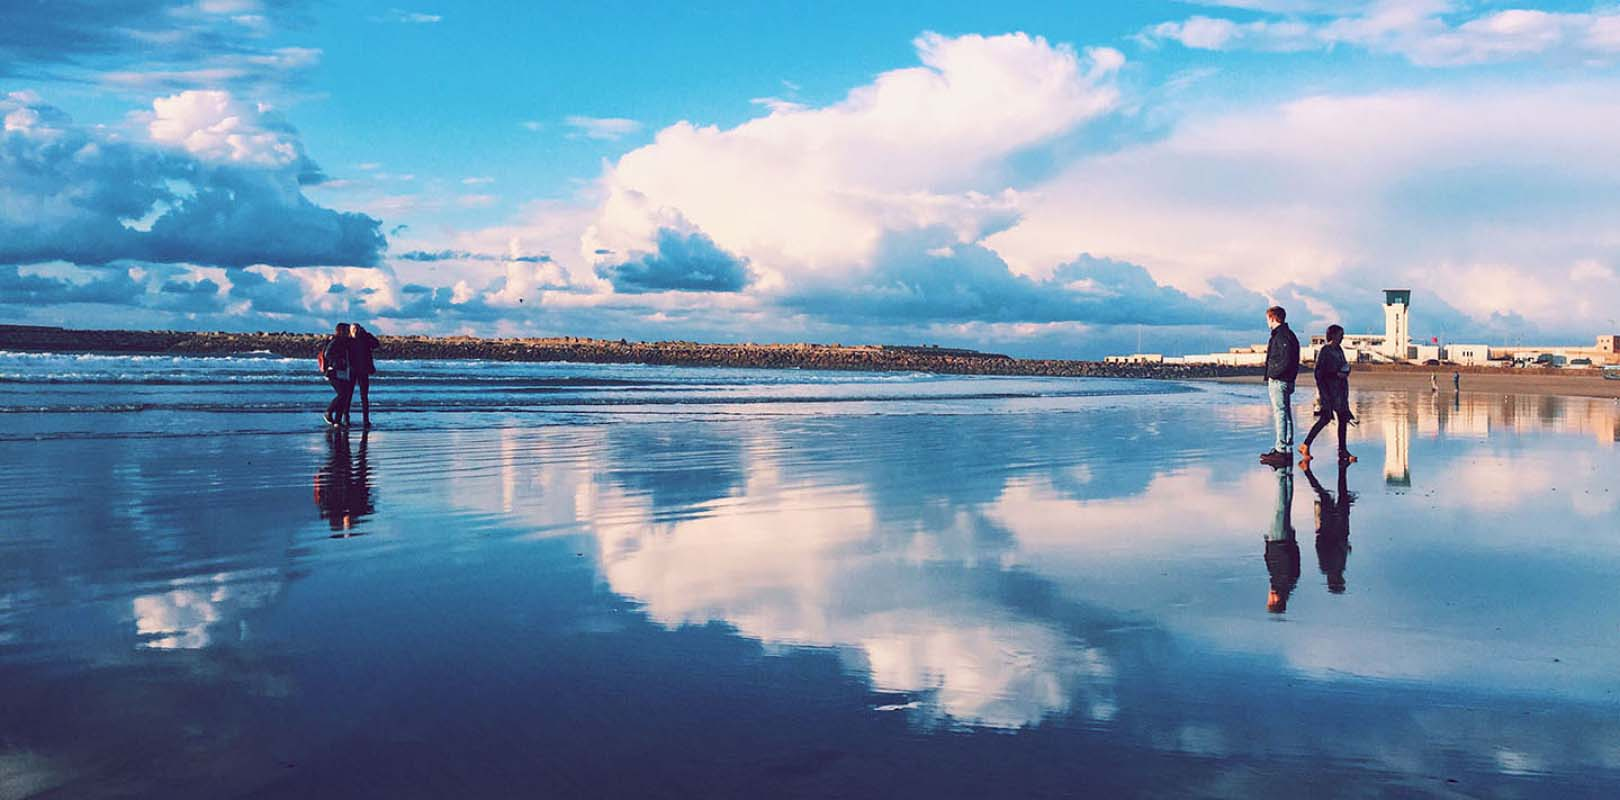 Clouds reflect on the water on the beach in Rabat, Morocco